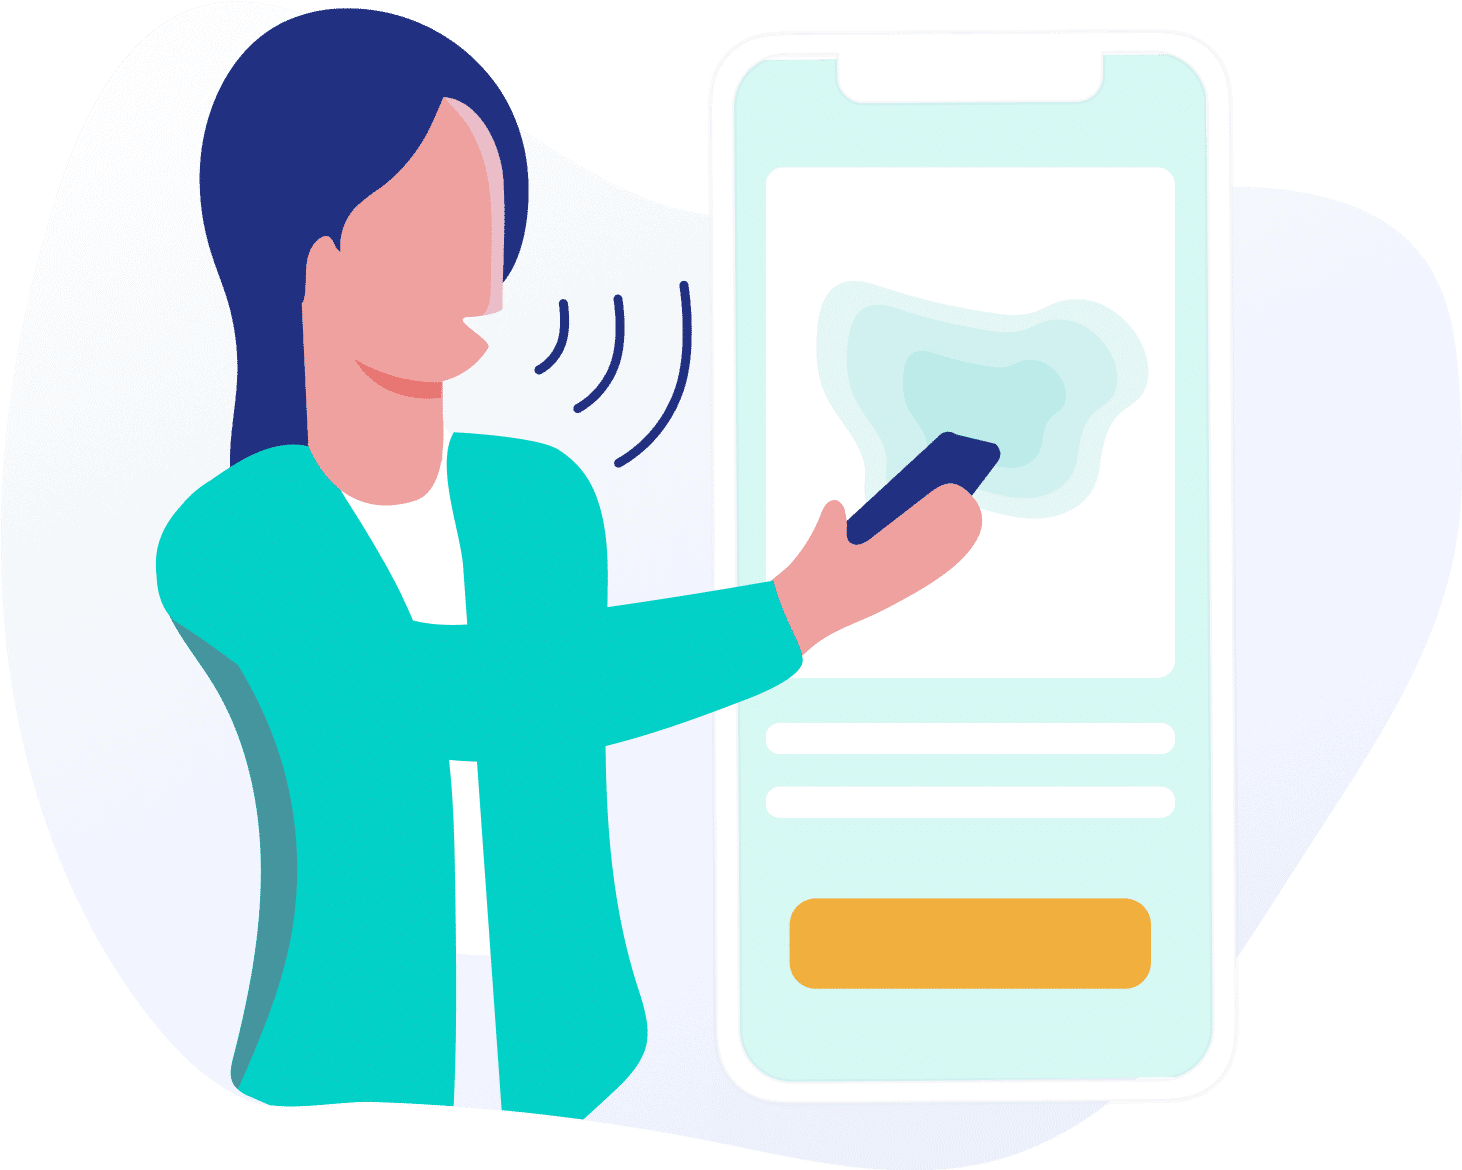 Voice Control User Interfaces as one of the best ux methods brought to you by WANDR top-ranked UX Digital design agency